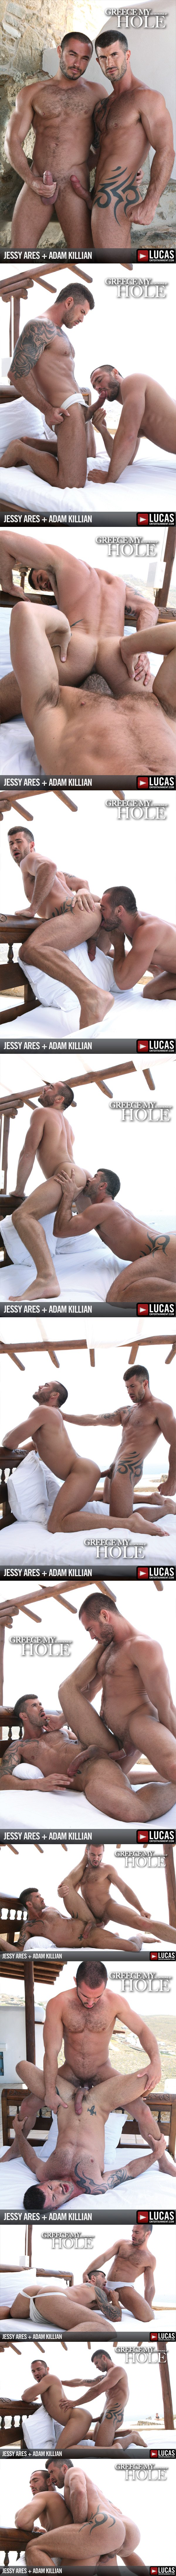 big dick Adam Killian and masculine Jessy Ares Flip-Flop at Lucasentertainment 02